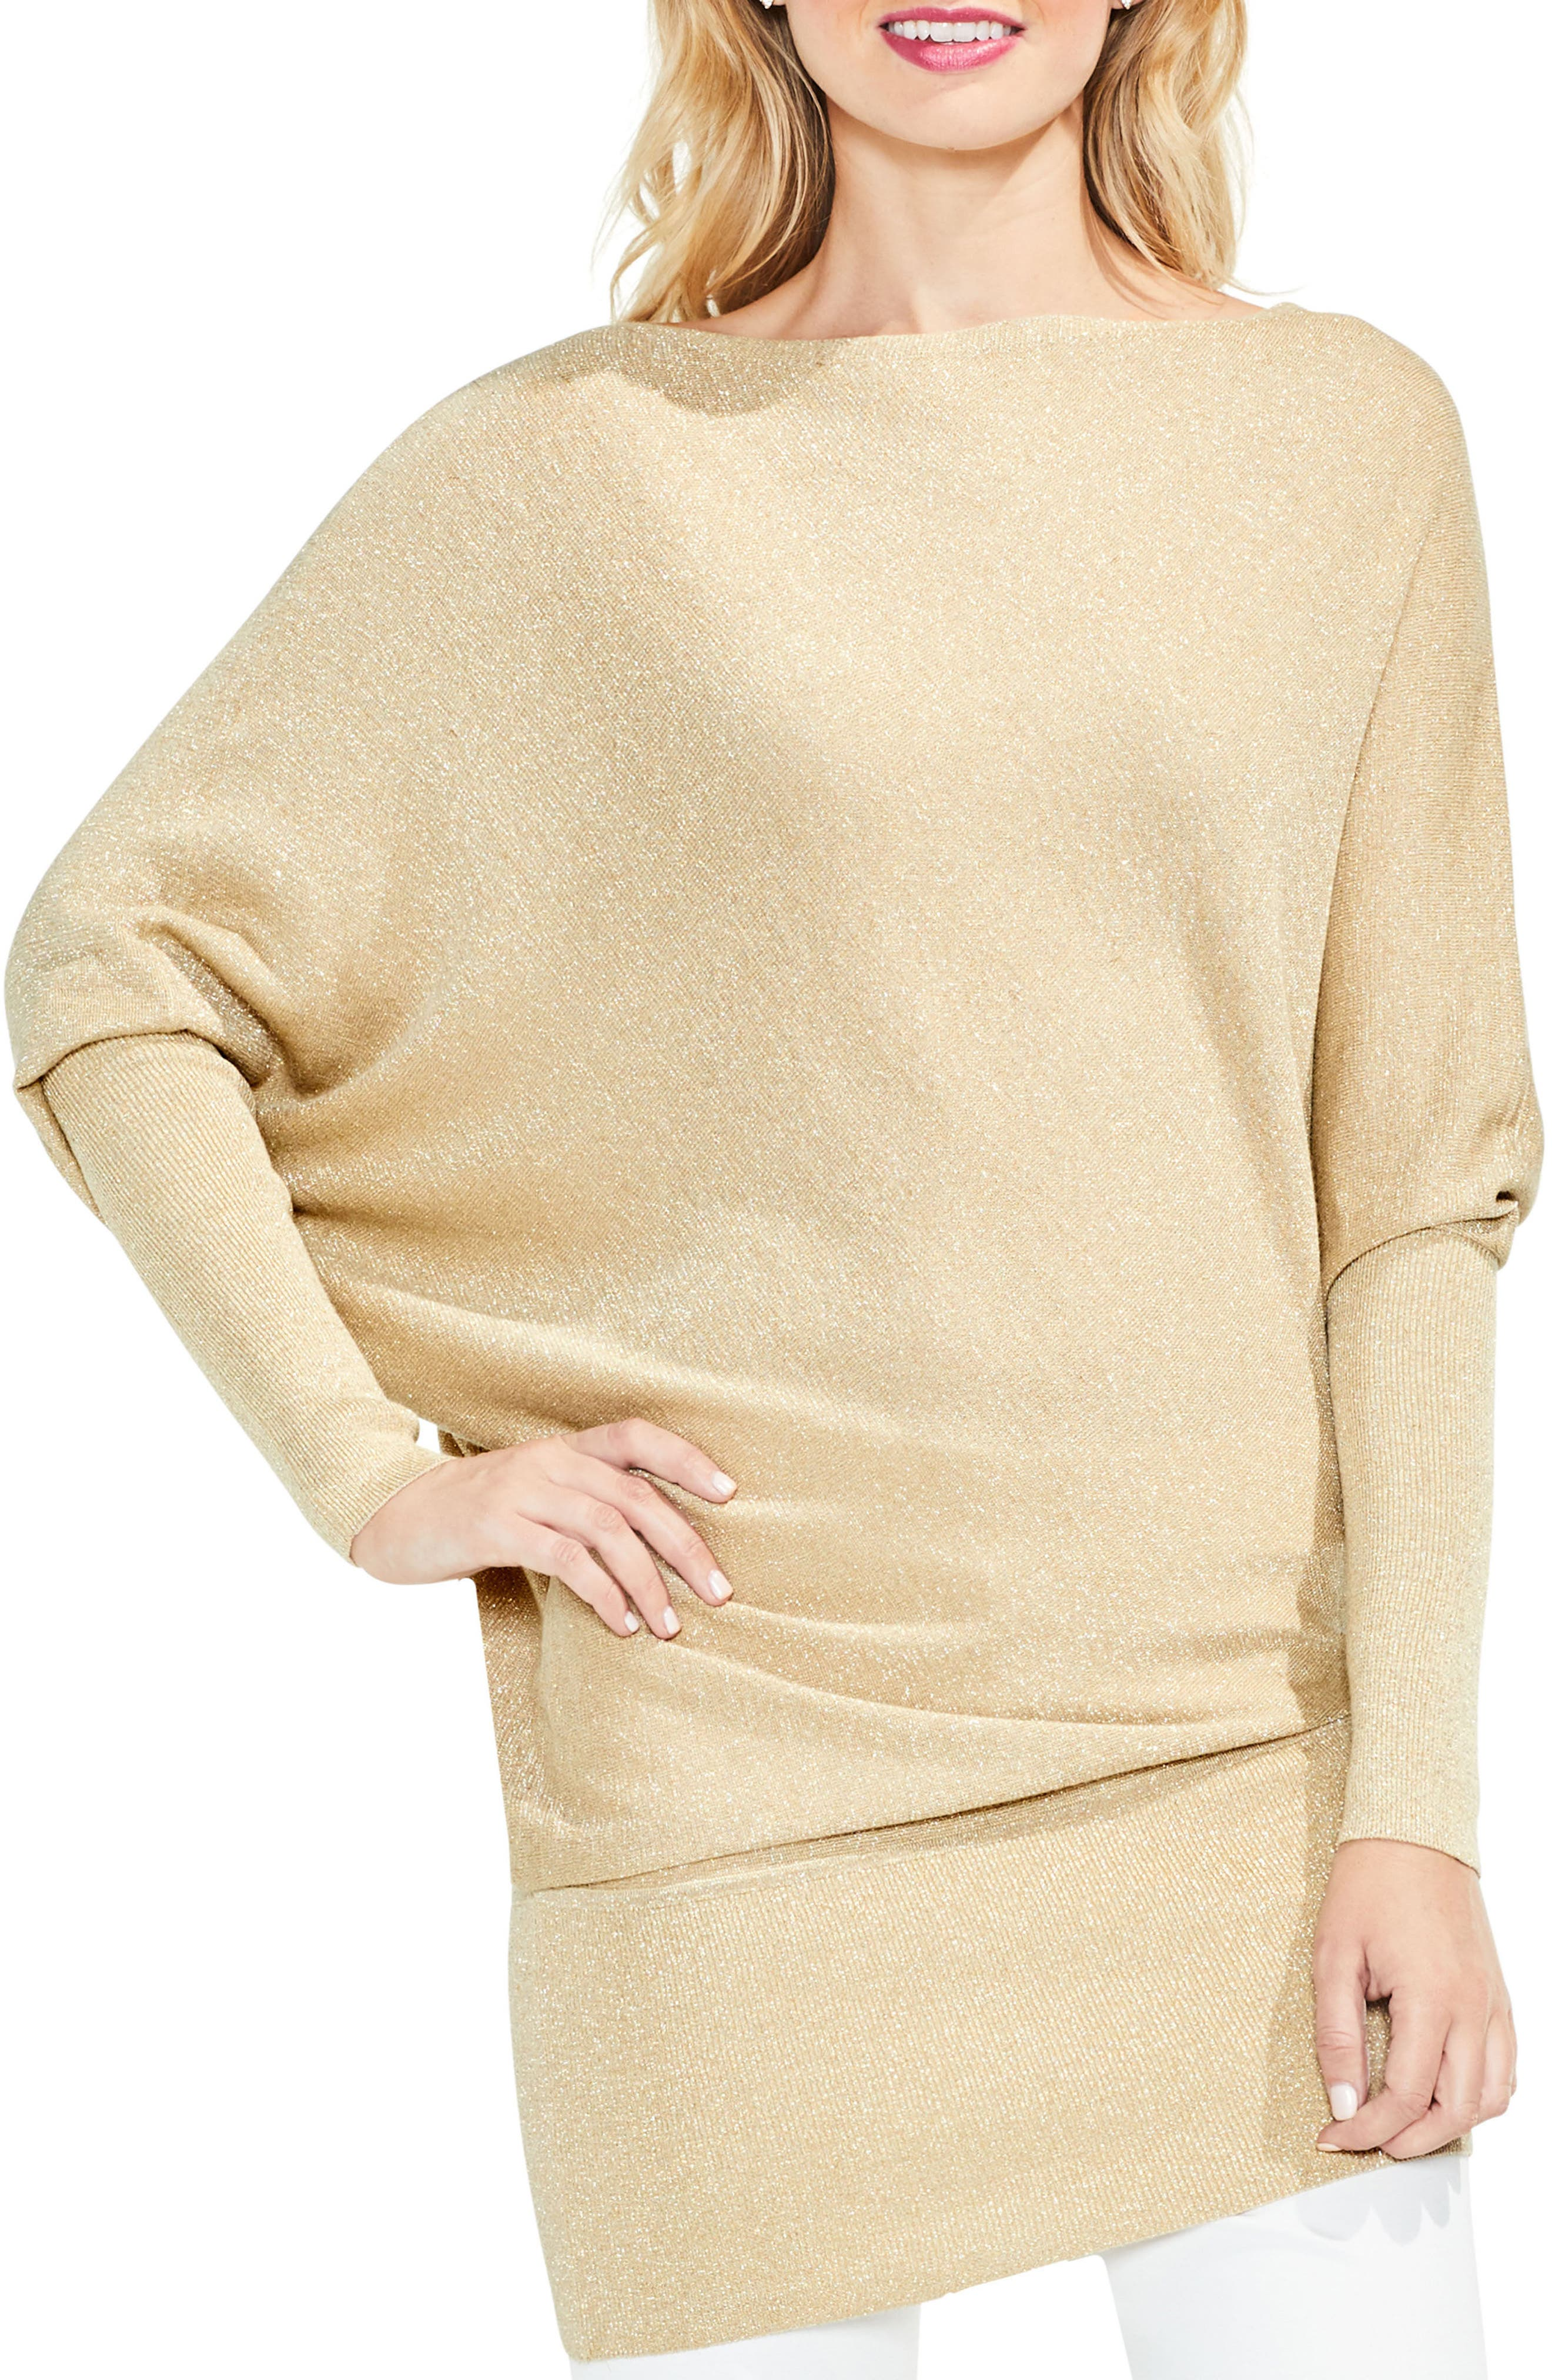 Batwing Sleeve Metallic Sweater,                             Main thumbnail 1, color,                             Bisque